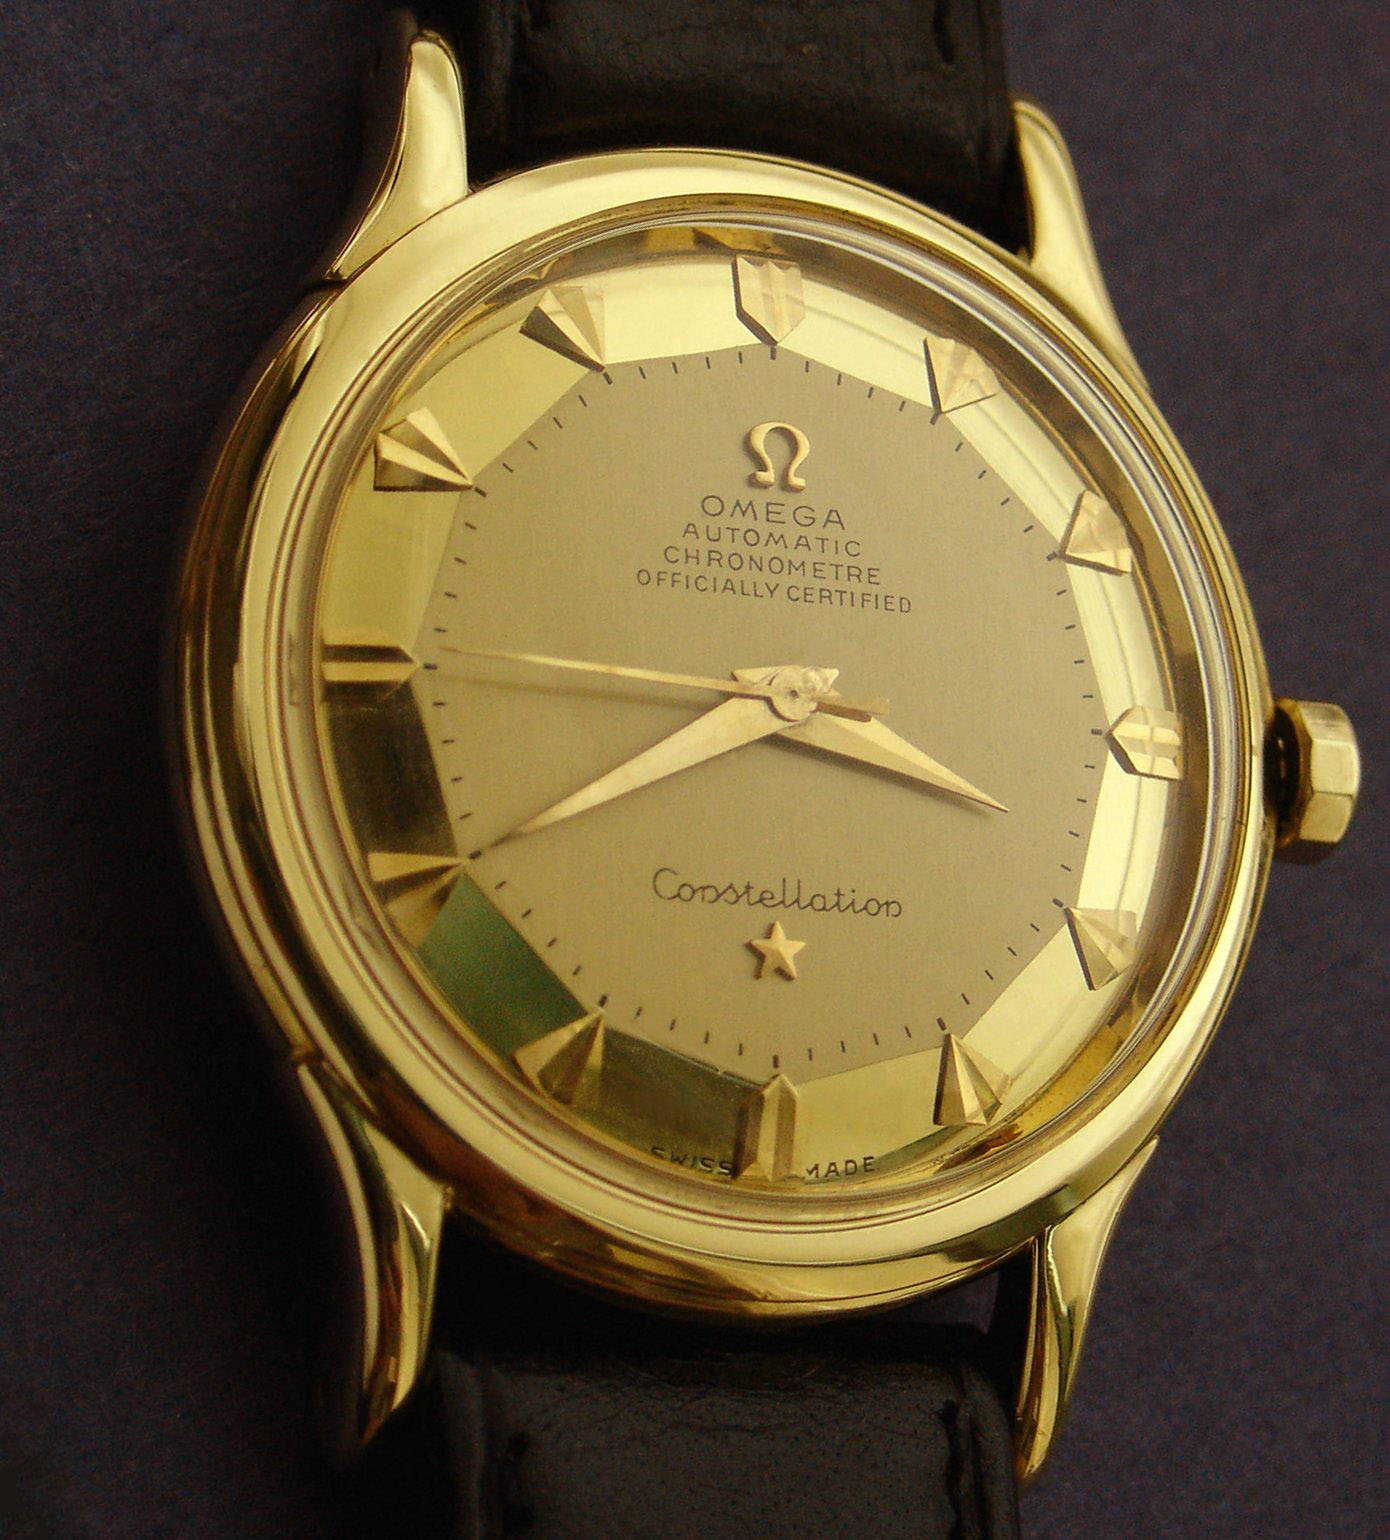 While the past four years have been plagued by prophesies of impending  financial doom, the market in quality vintage Omega watches has remained  buoyant.